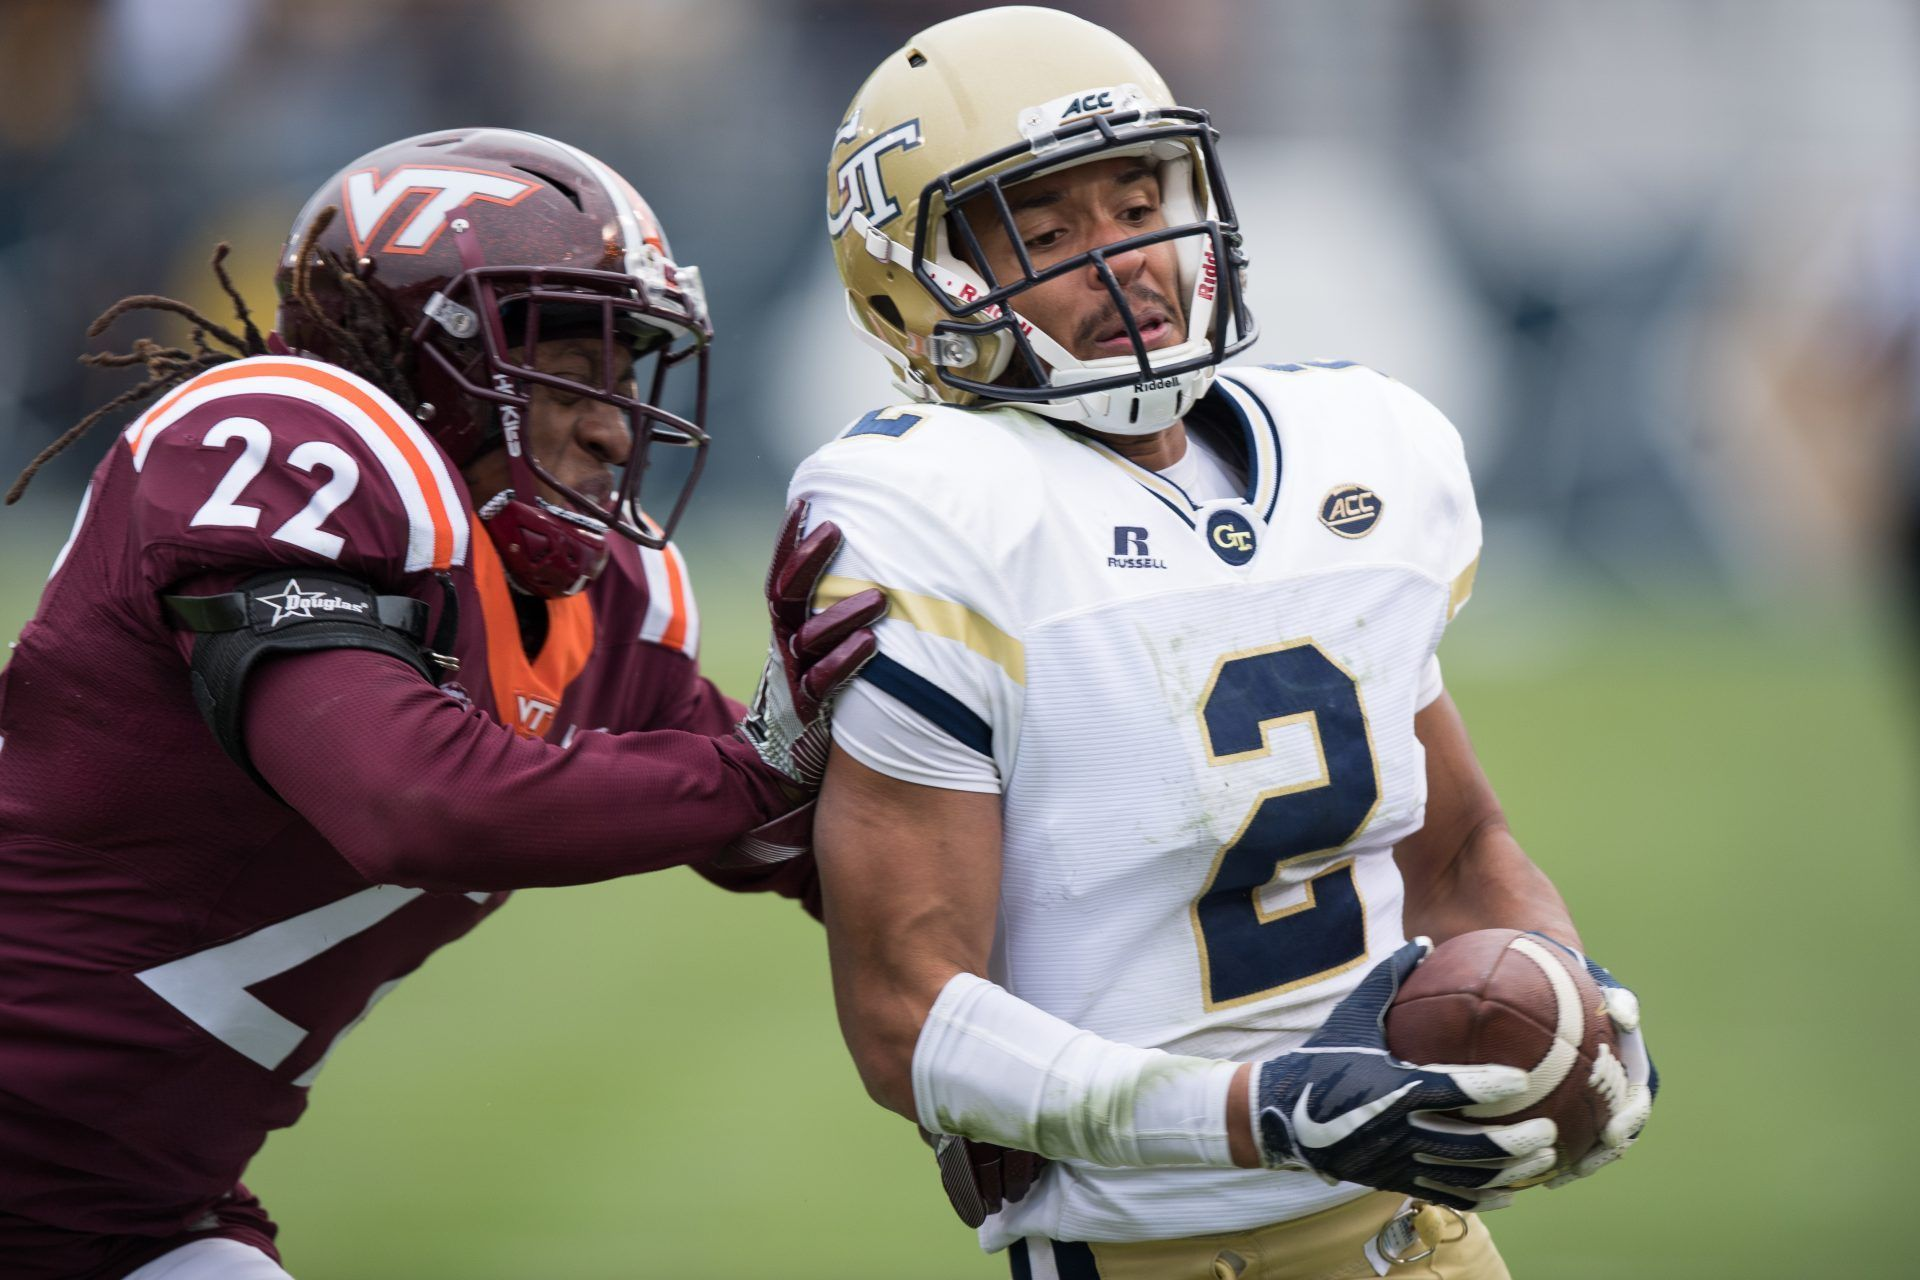 By Rebecca Washney Atlanta The Yellow Jackets Quarterback Taquon Marshall Did Just Enough To Scrape A Win Over V Virginia Tech Yellow Jacket Football Helmets